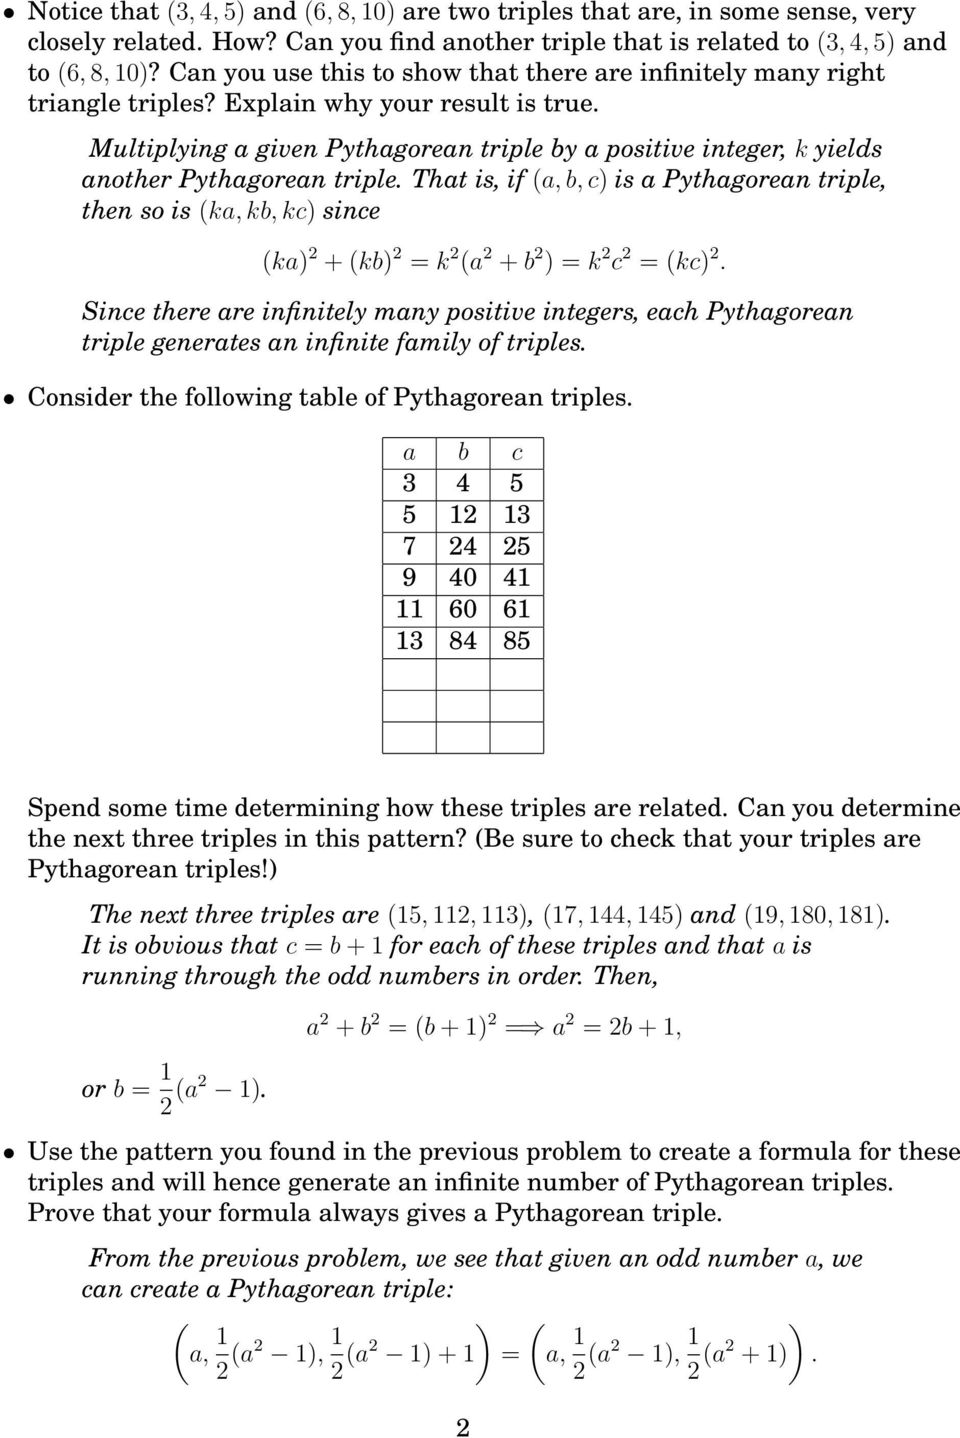 Multilying a given Pythagorean trile by a ositive integer, k yields another Pythagorean trile.